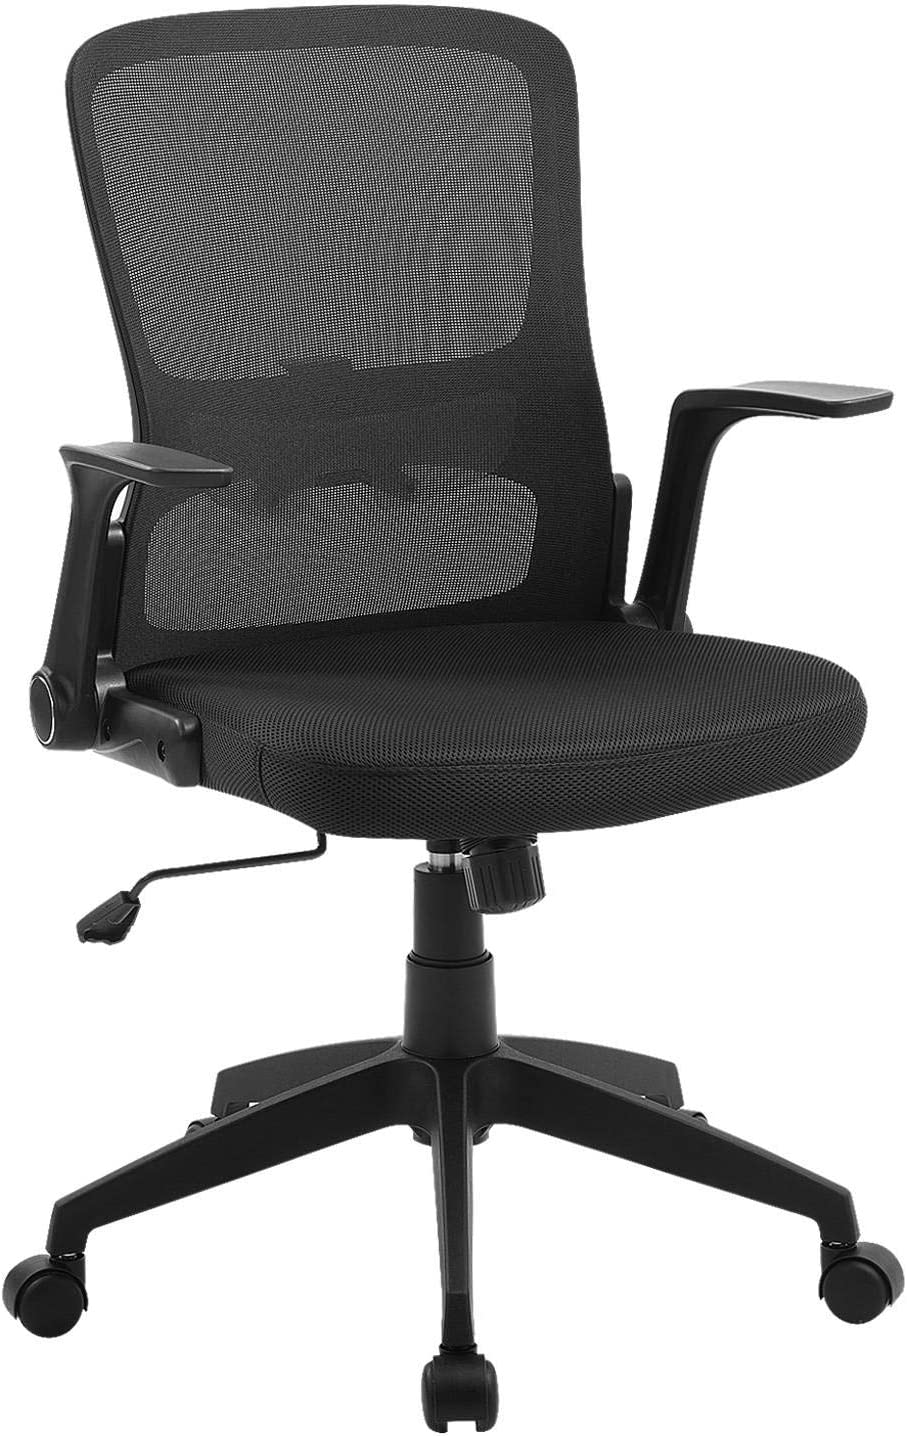 Office Chair Ergonomic Desk Chair Mid Back Swivel Mesh Computer Chair Adjustable Stool Rolling Home Office Chair with Flip up Arms Adjustable Lumbar Support 300lbs-Black